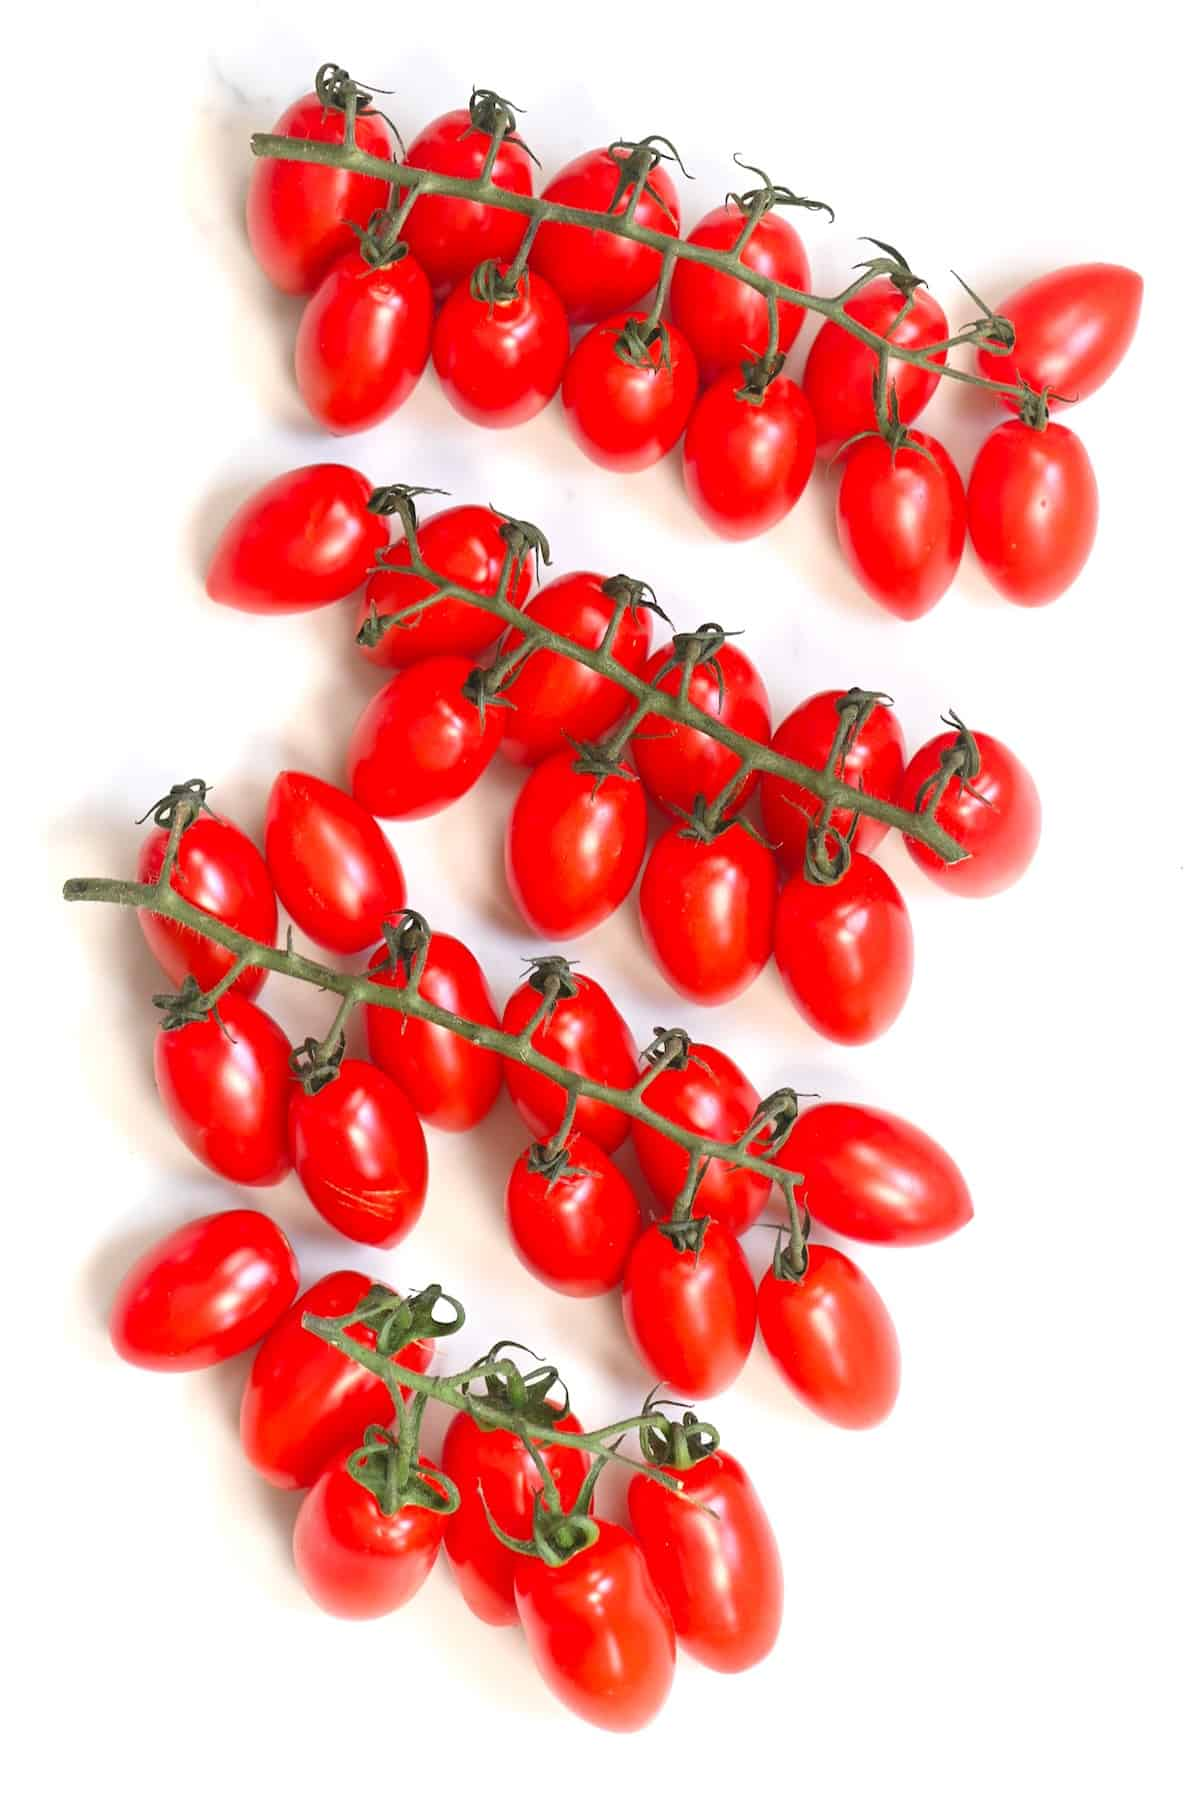 Cherry tomatoes on a white surface